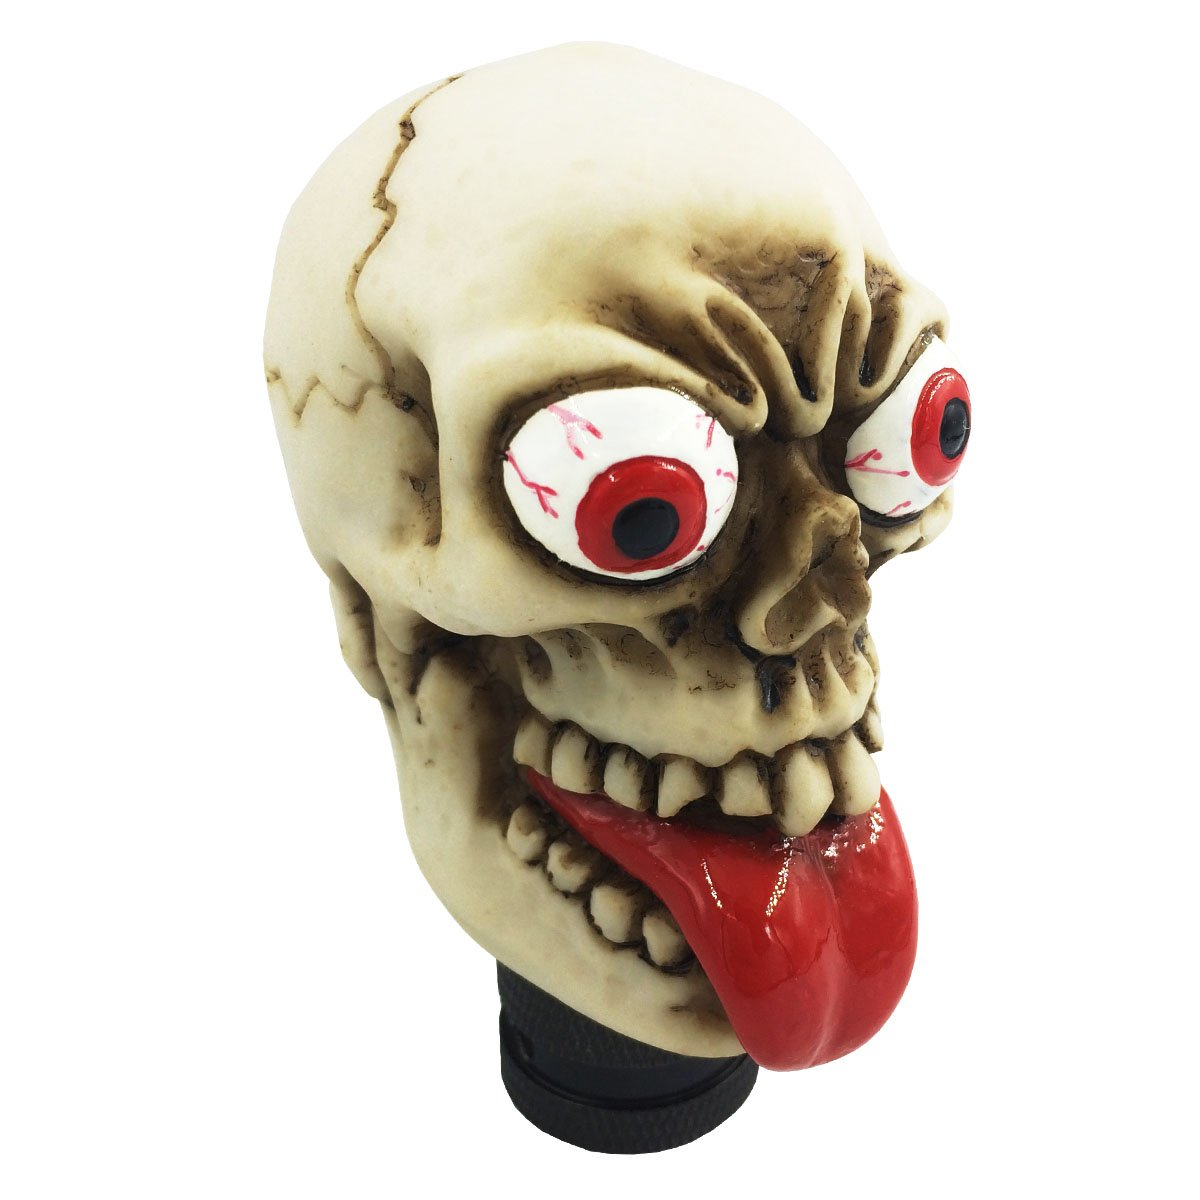 Abfer Skull Gear Stick Shift Knob Automatic Manual Shifter Knobs For Car Truck